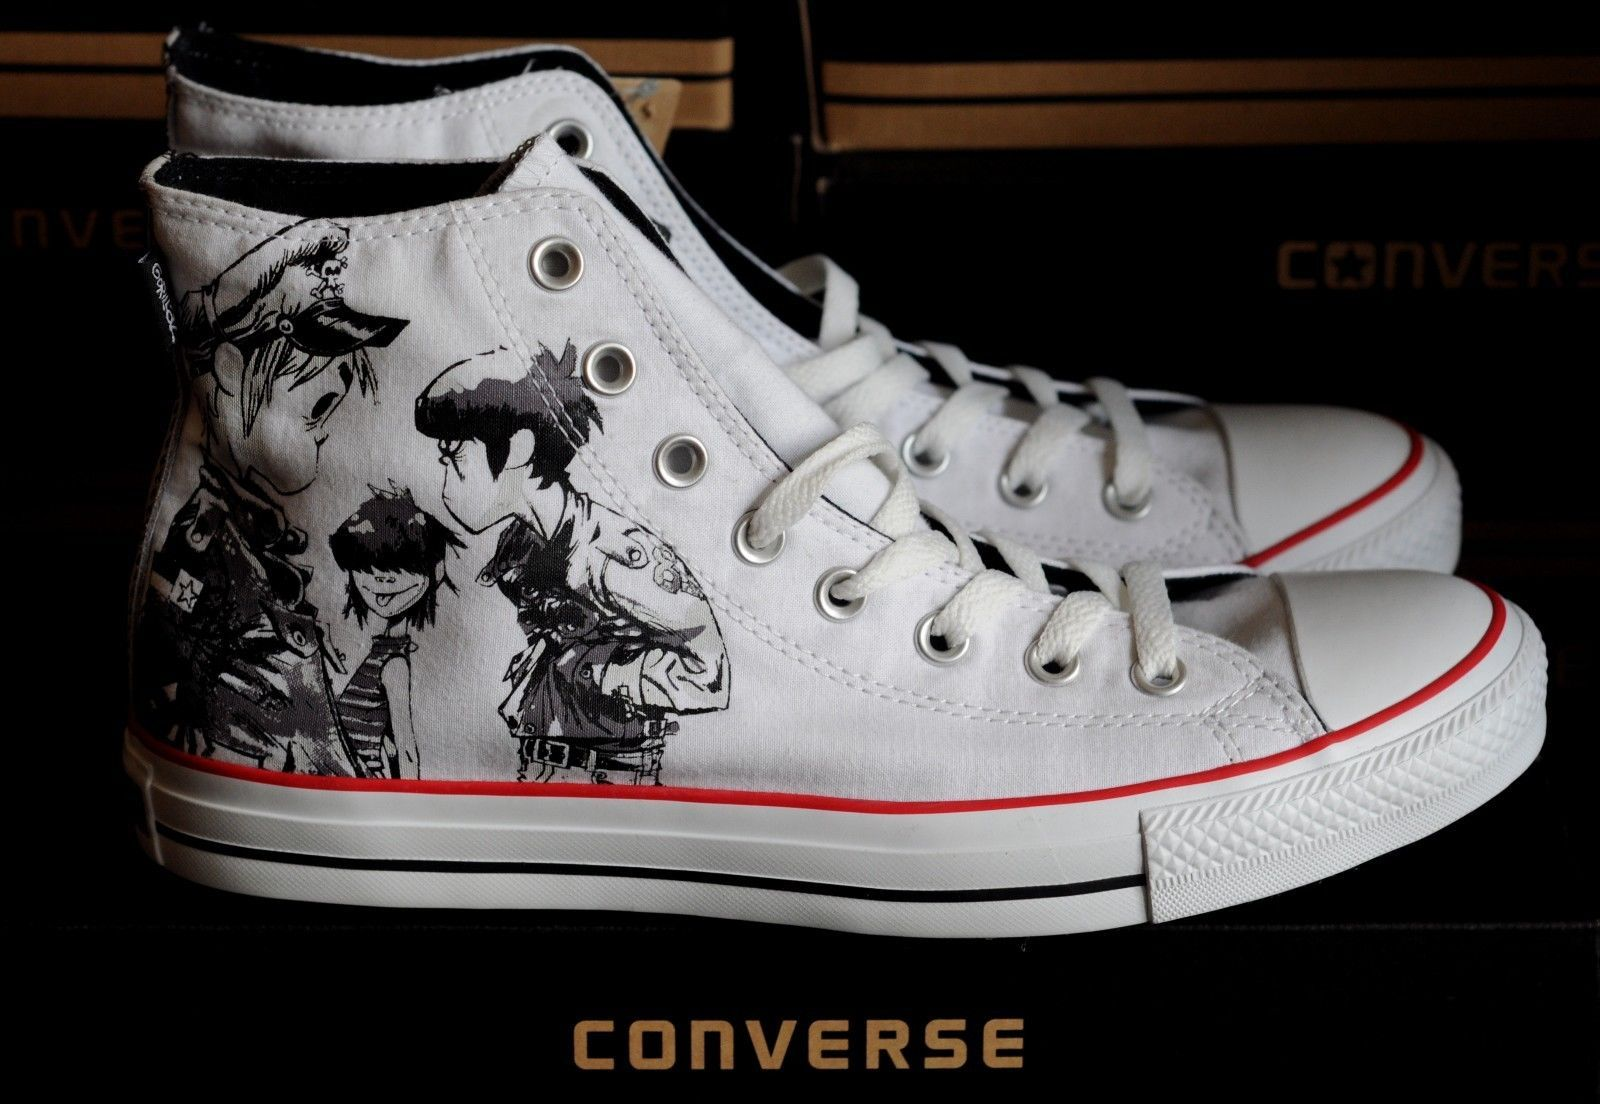 6b98a5d7766d Gorillaz Converse All Star Chuck Taylor Limited Edition Comic rare Music  Edition